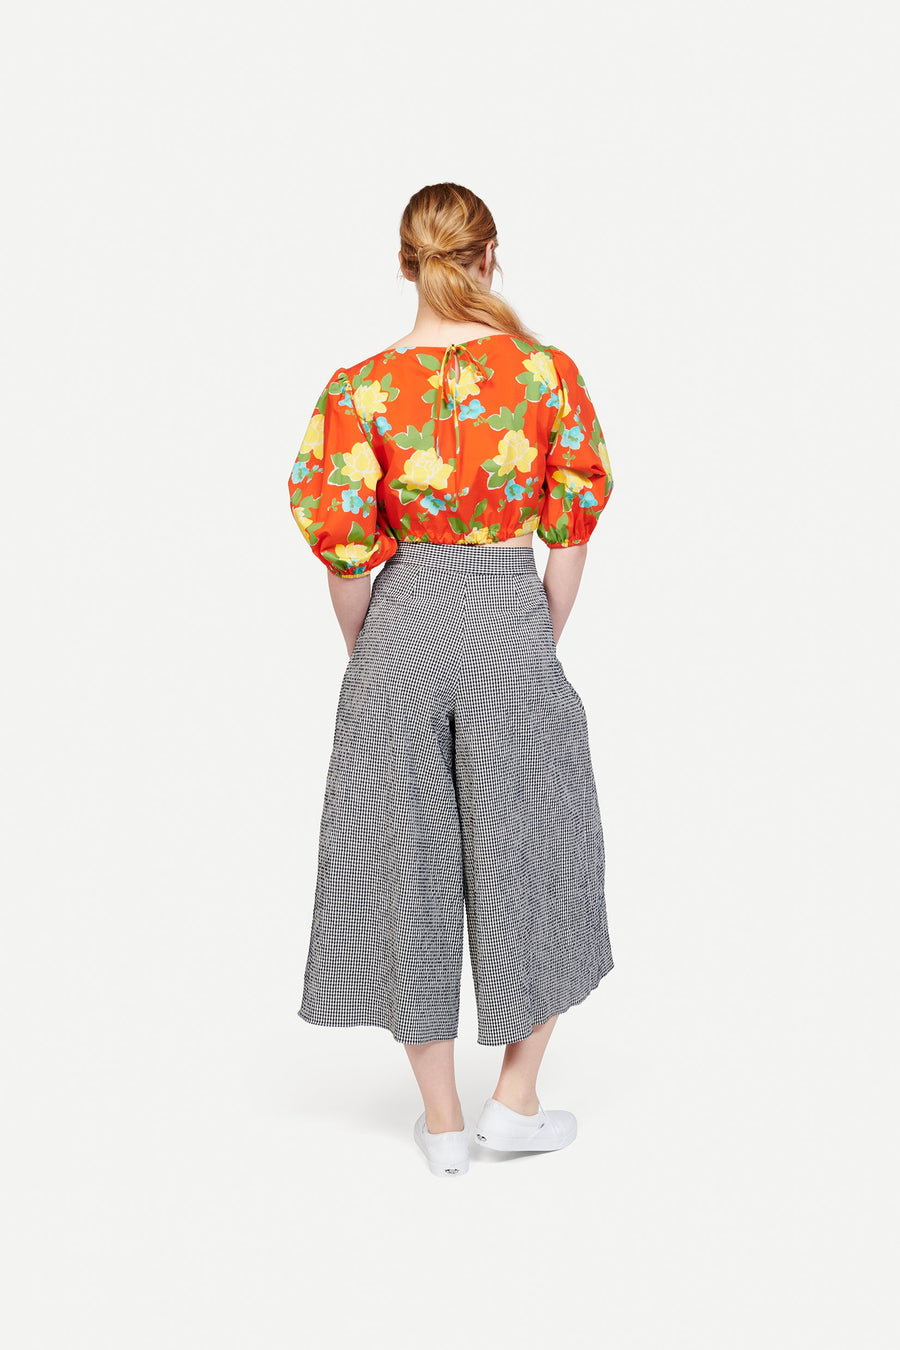 Tilden Top in Hermosa Floral Red/Yellow